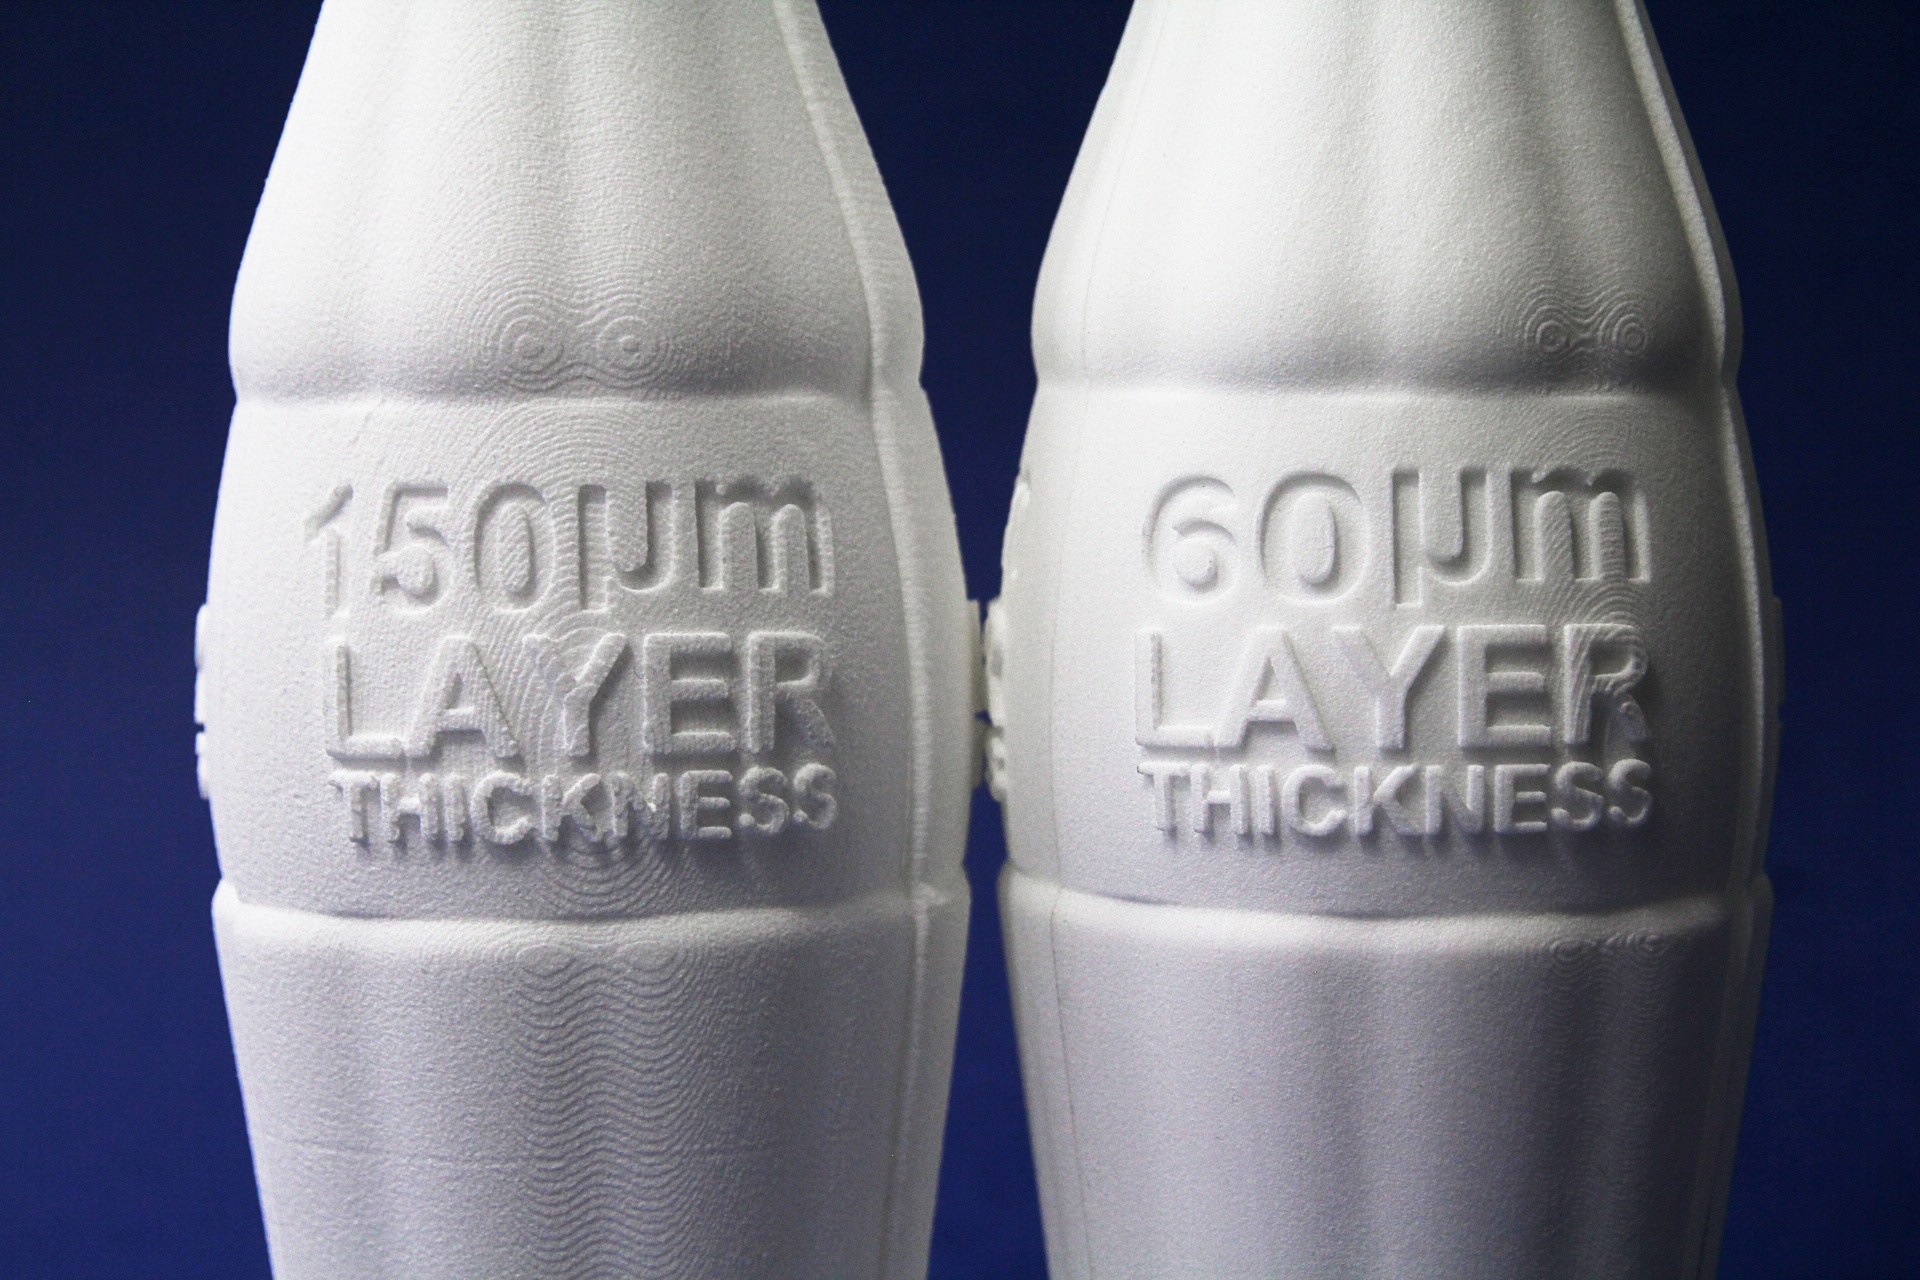 Understanding our 60µm layer thickness printing setting